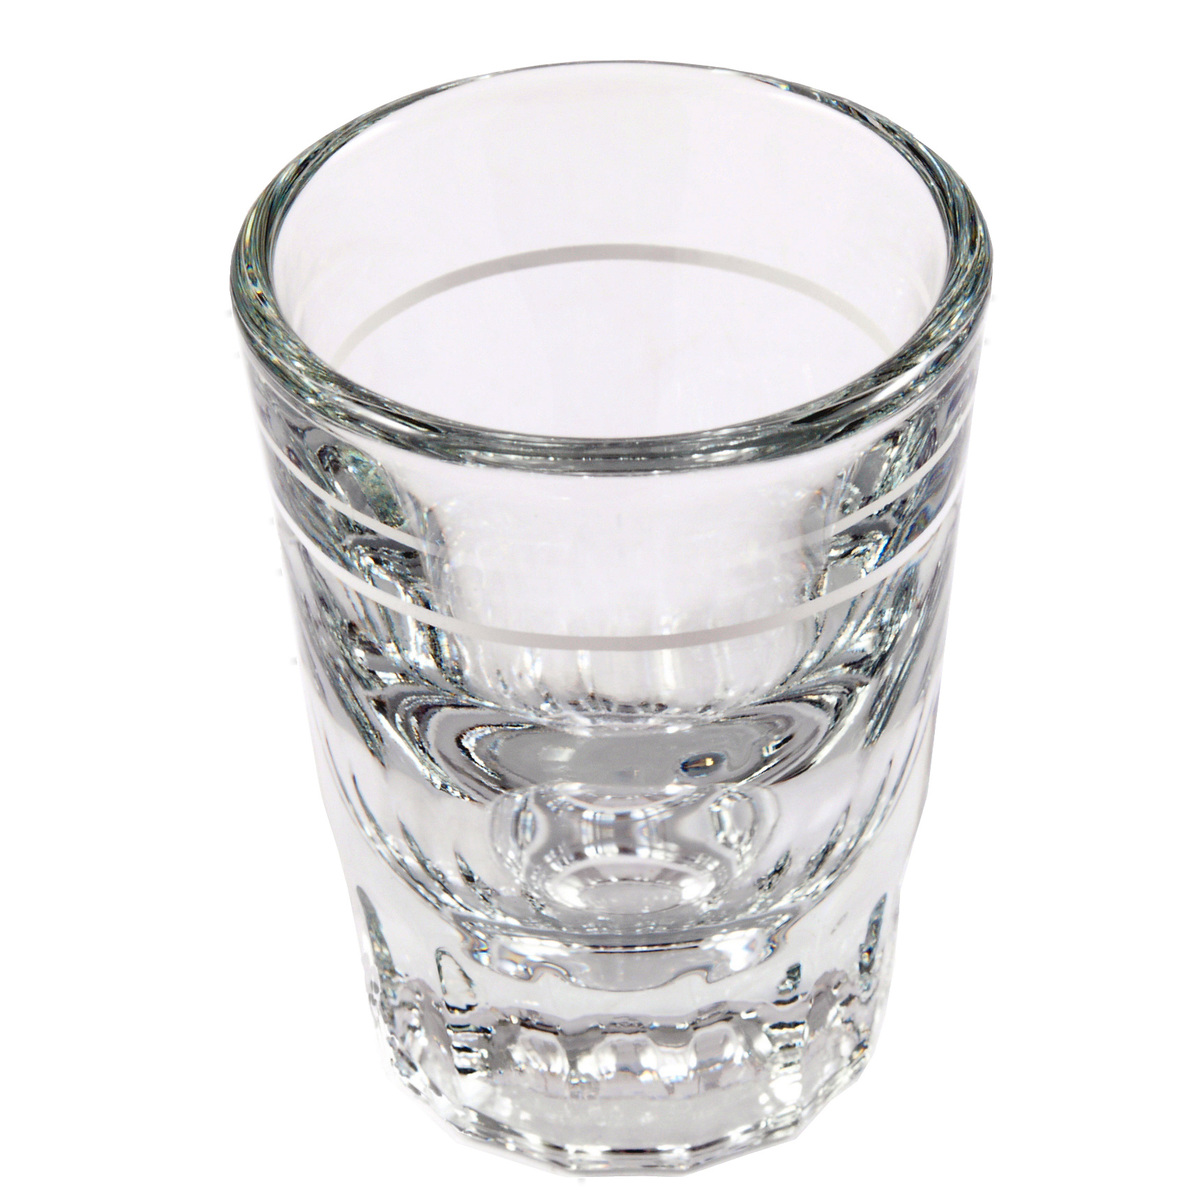 2oz Shot Glass (lined at 1oz)